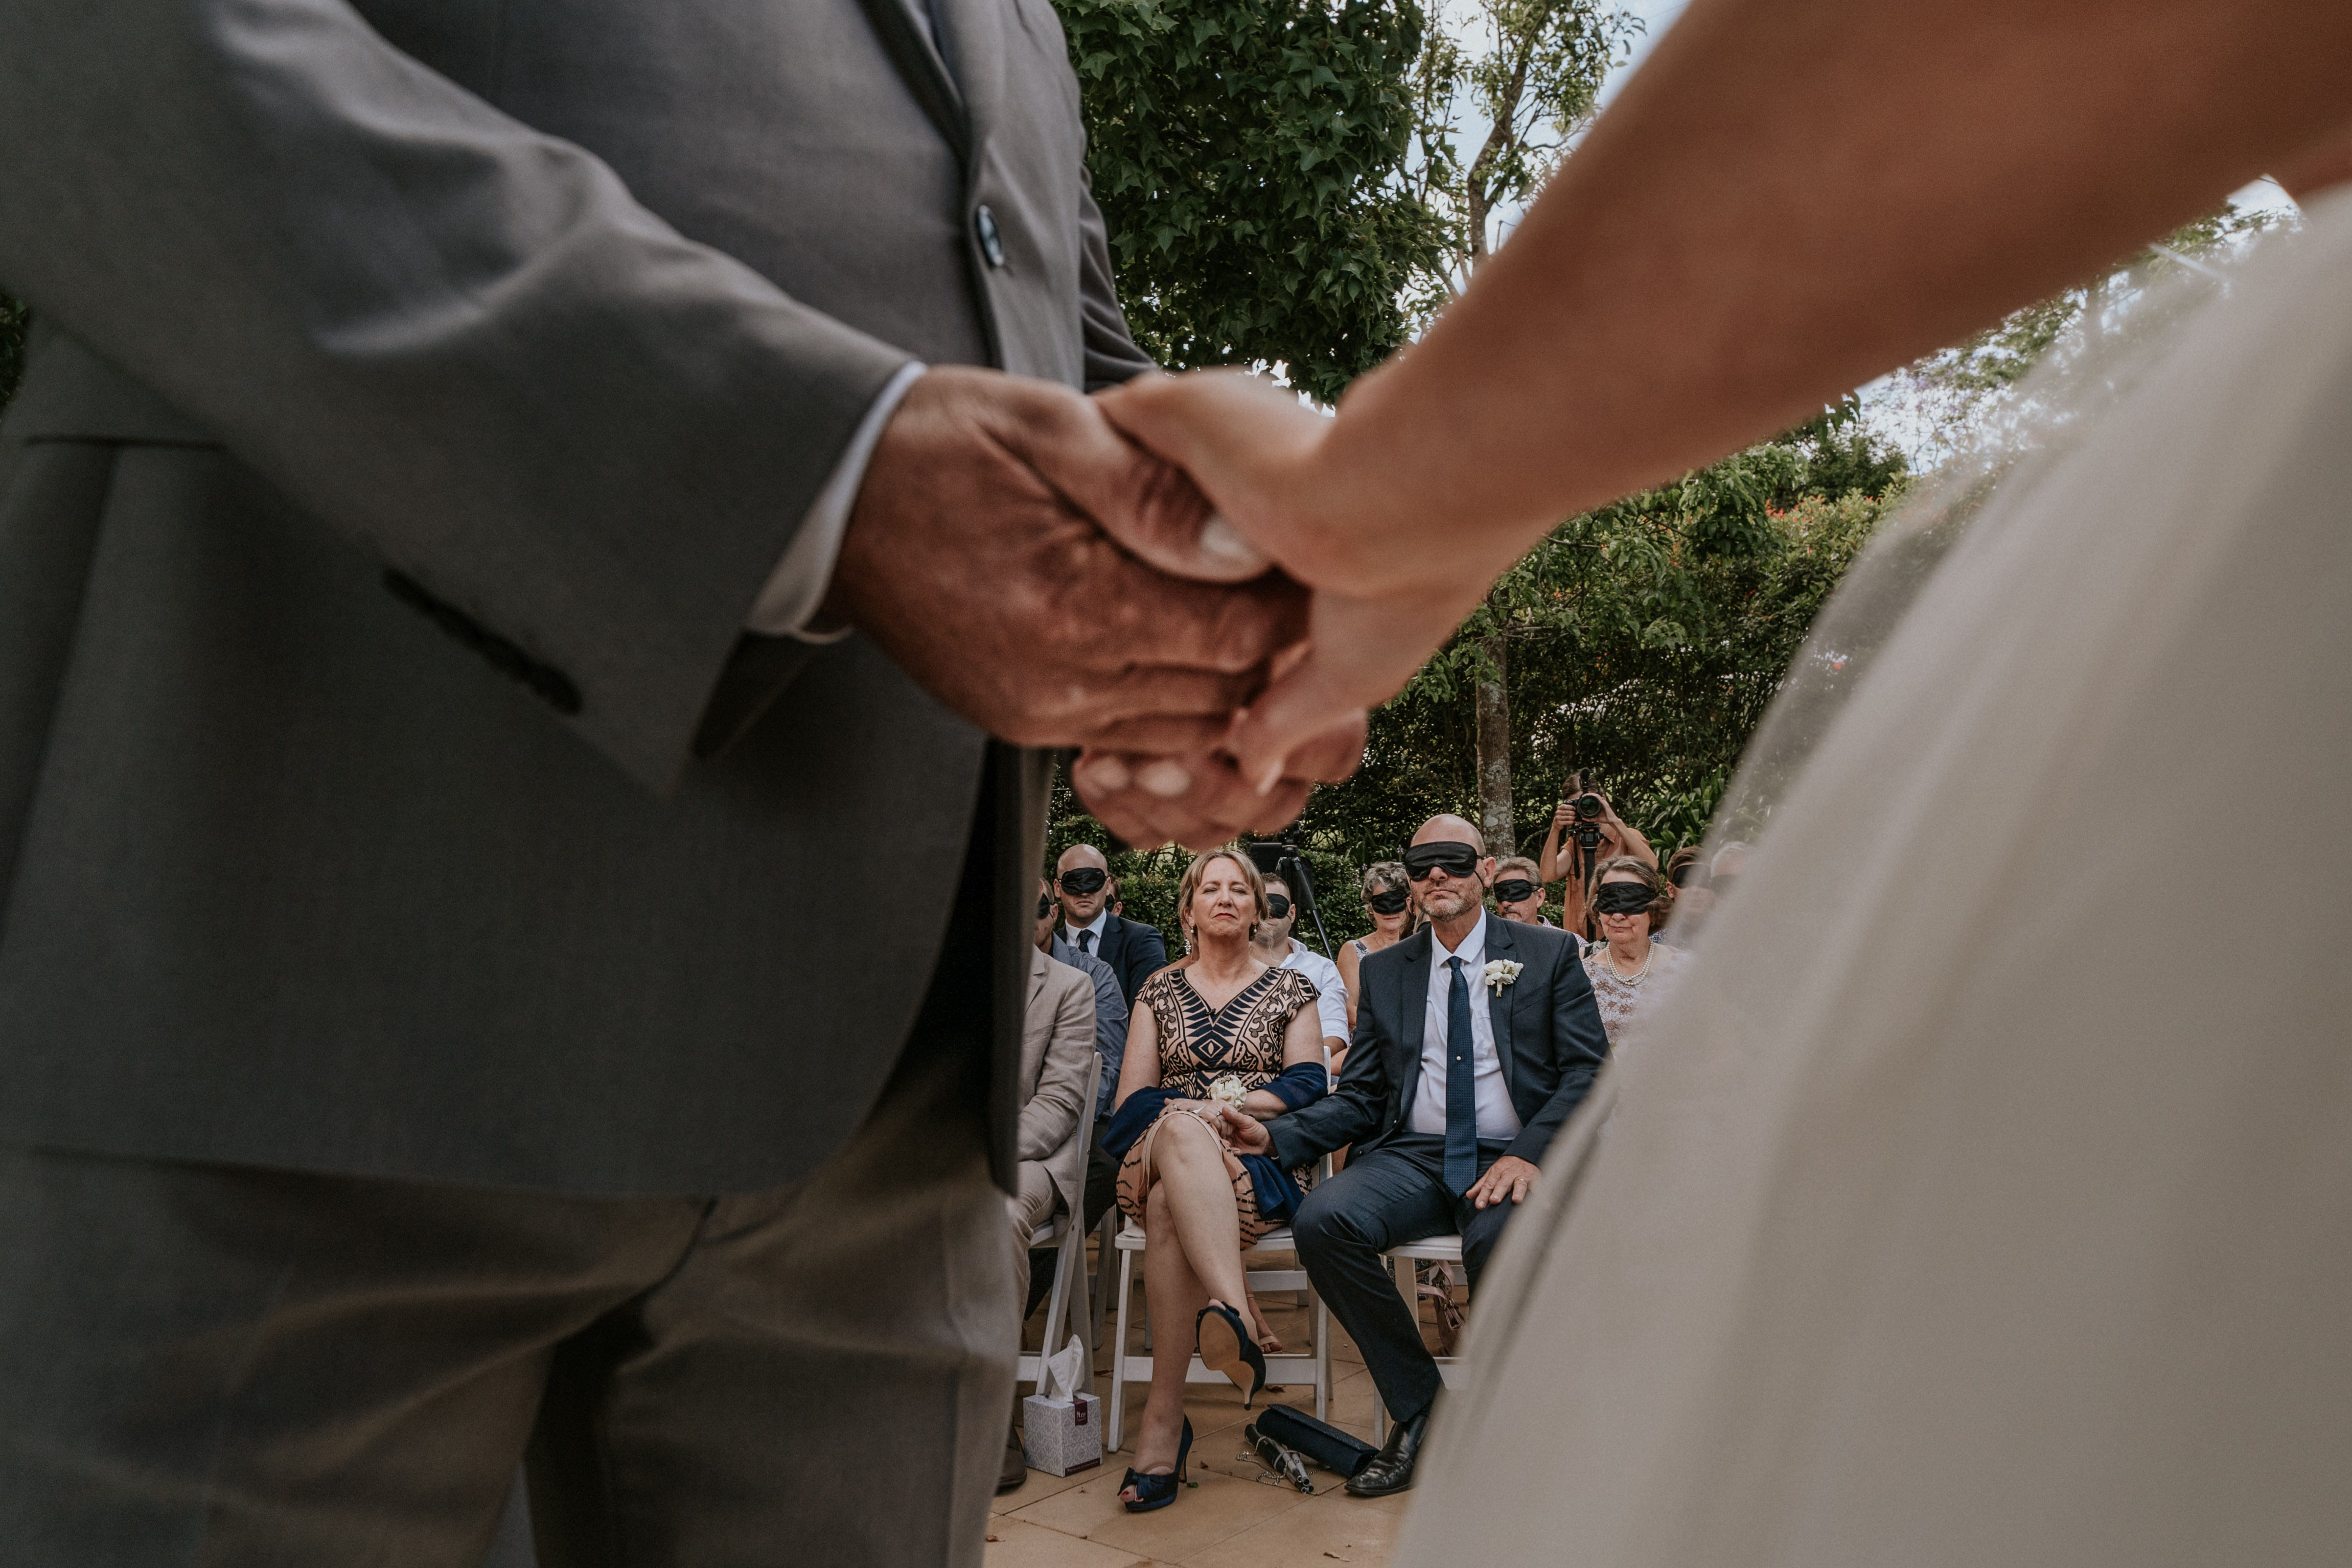 """""""When we lose one of our senses the others become heightened,"""" officiant Jarrad Bayliss said during the ceremony. """"Which allows us to experience something as beautiful as these vows in a totally unique way. Today, we get to experience that in Steph's way."""""""